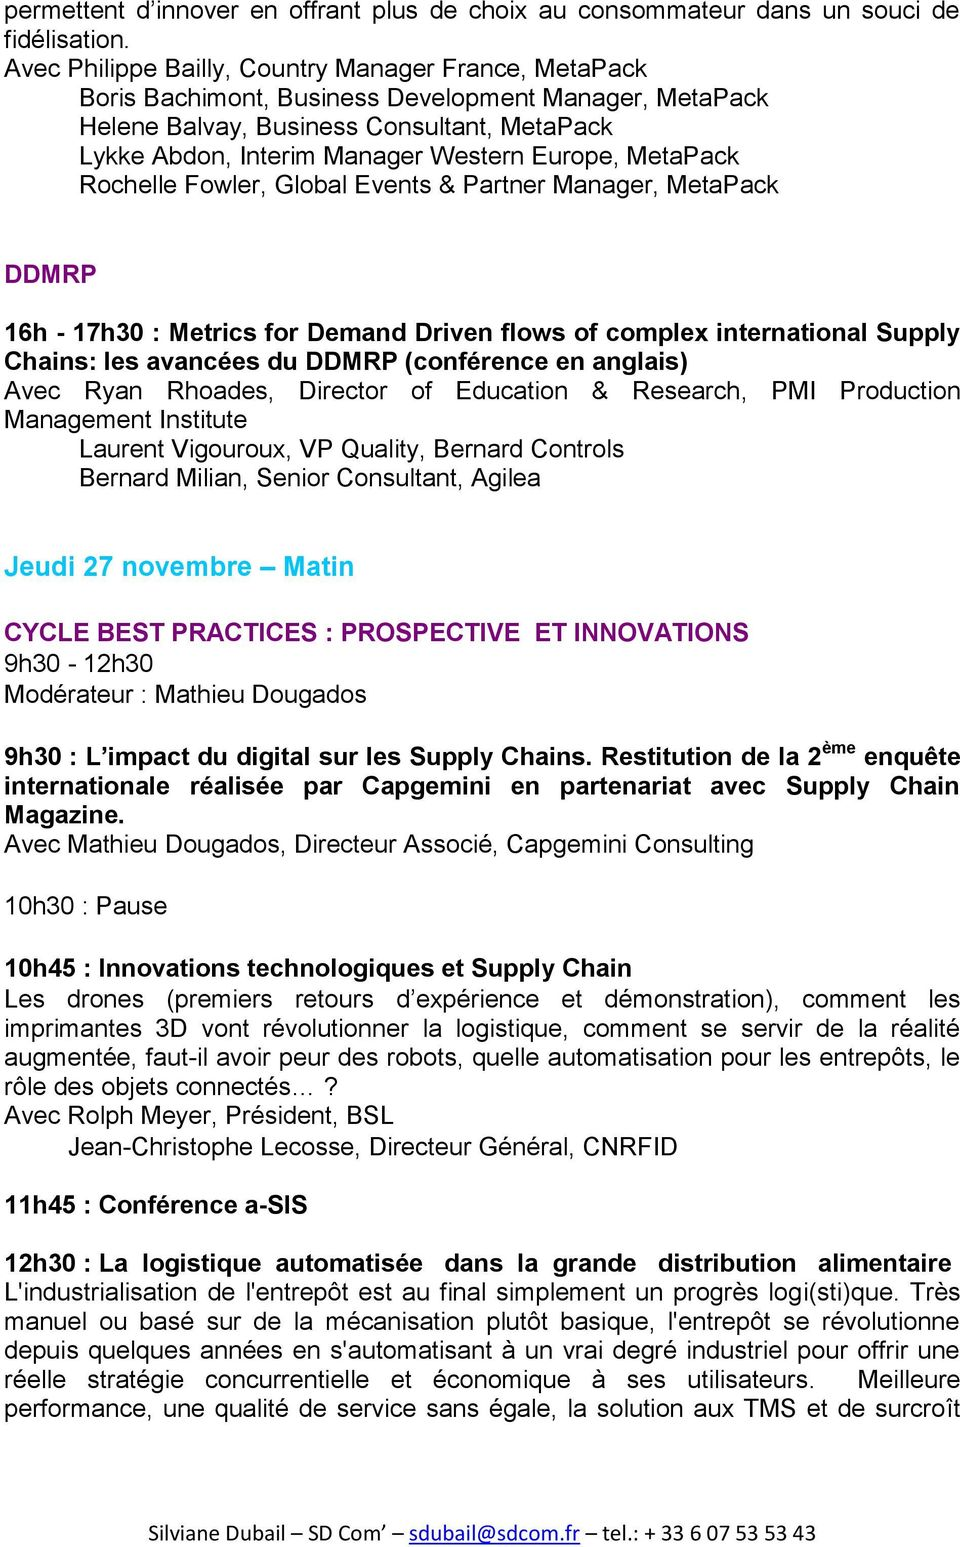 Europe, MetaPack Rochelle Fowler, Global Events & Partner Manager, MetaPack DDMRP 16h - 17h30 : Metrics for Demand Driven flows of complex international Supply Chains: les avancées du DDMRP